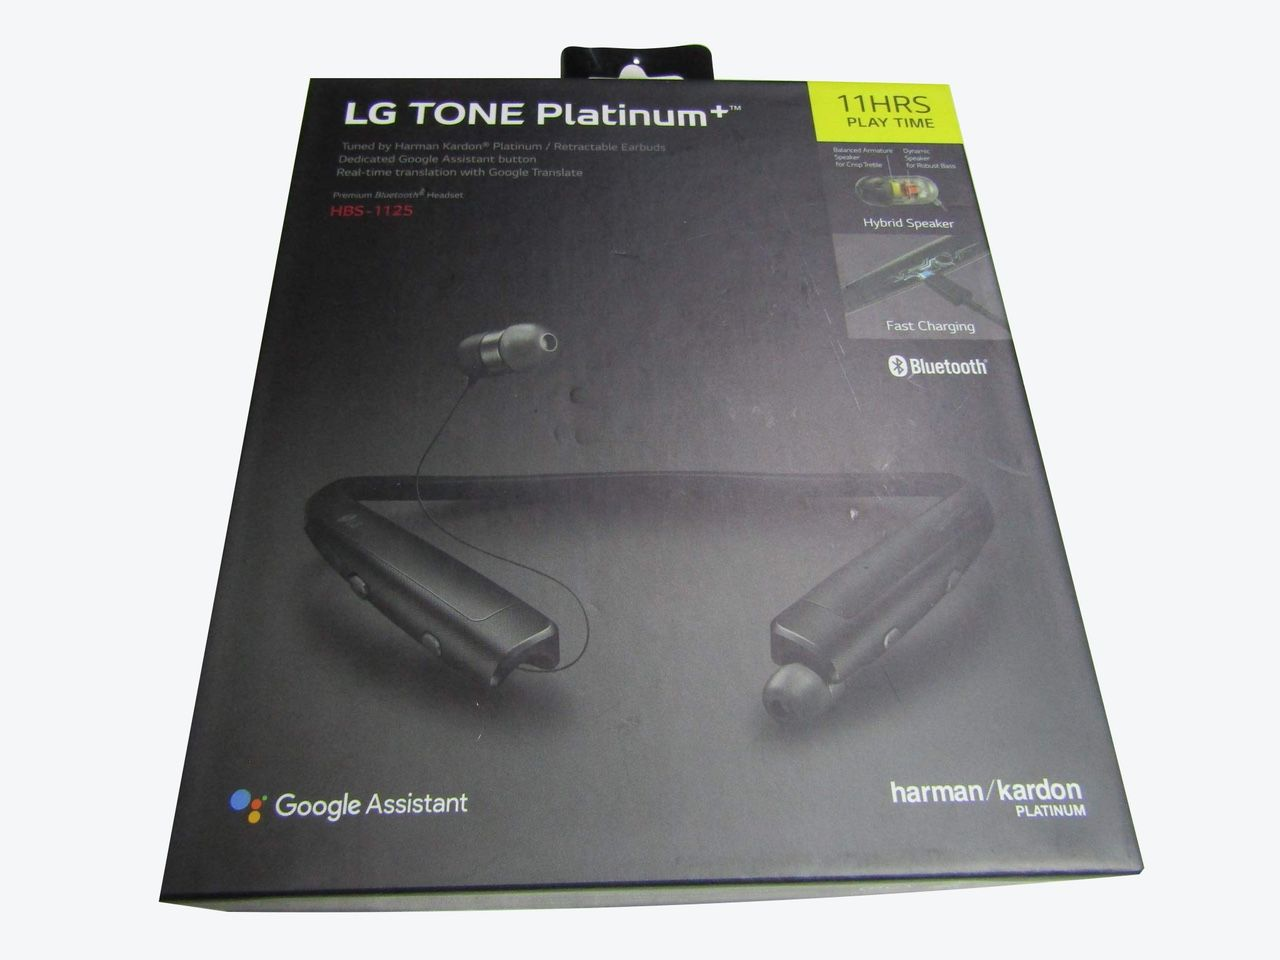 LG HBS-1125 Tone Platinum+ Bluetooth Wireless Stereo Headset With Fast Charge And Google Assistant Button, Black LN1